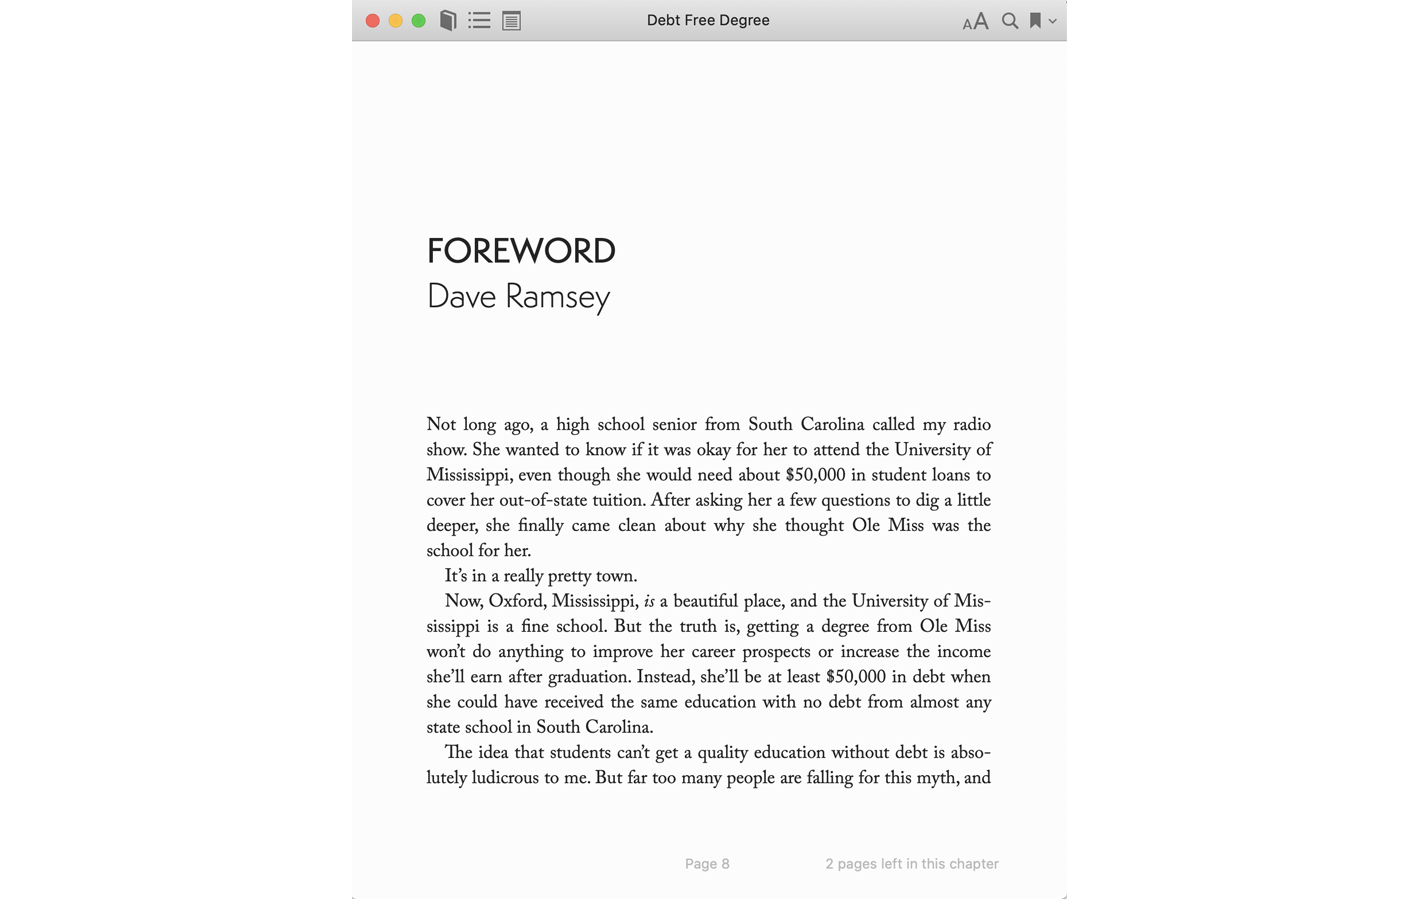 Foreword by Dave Ramsey